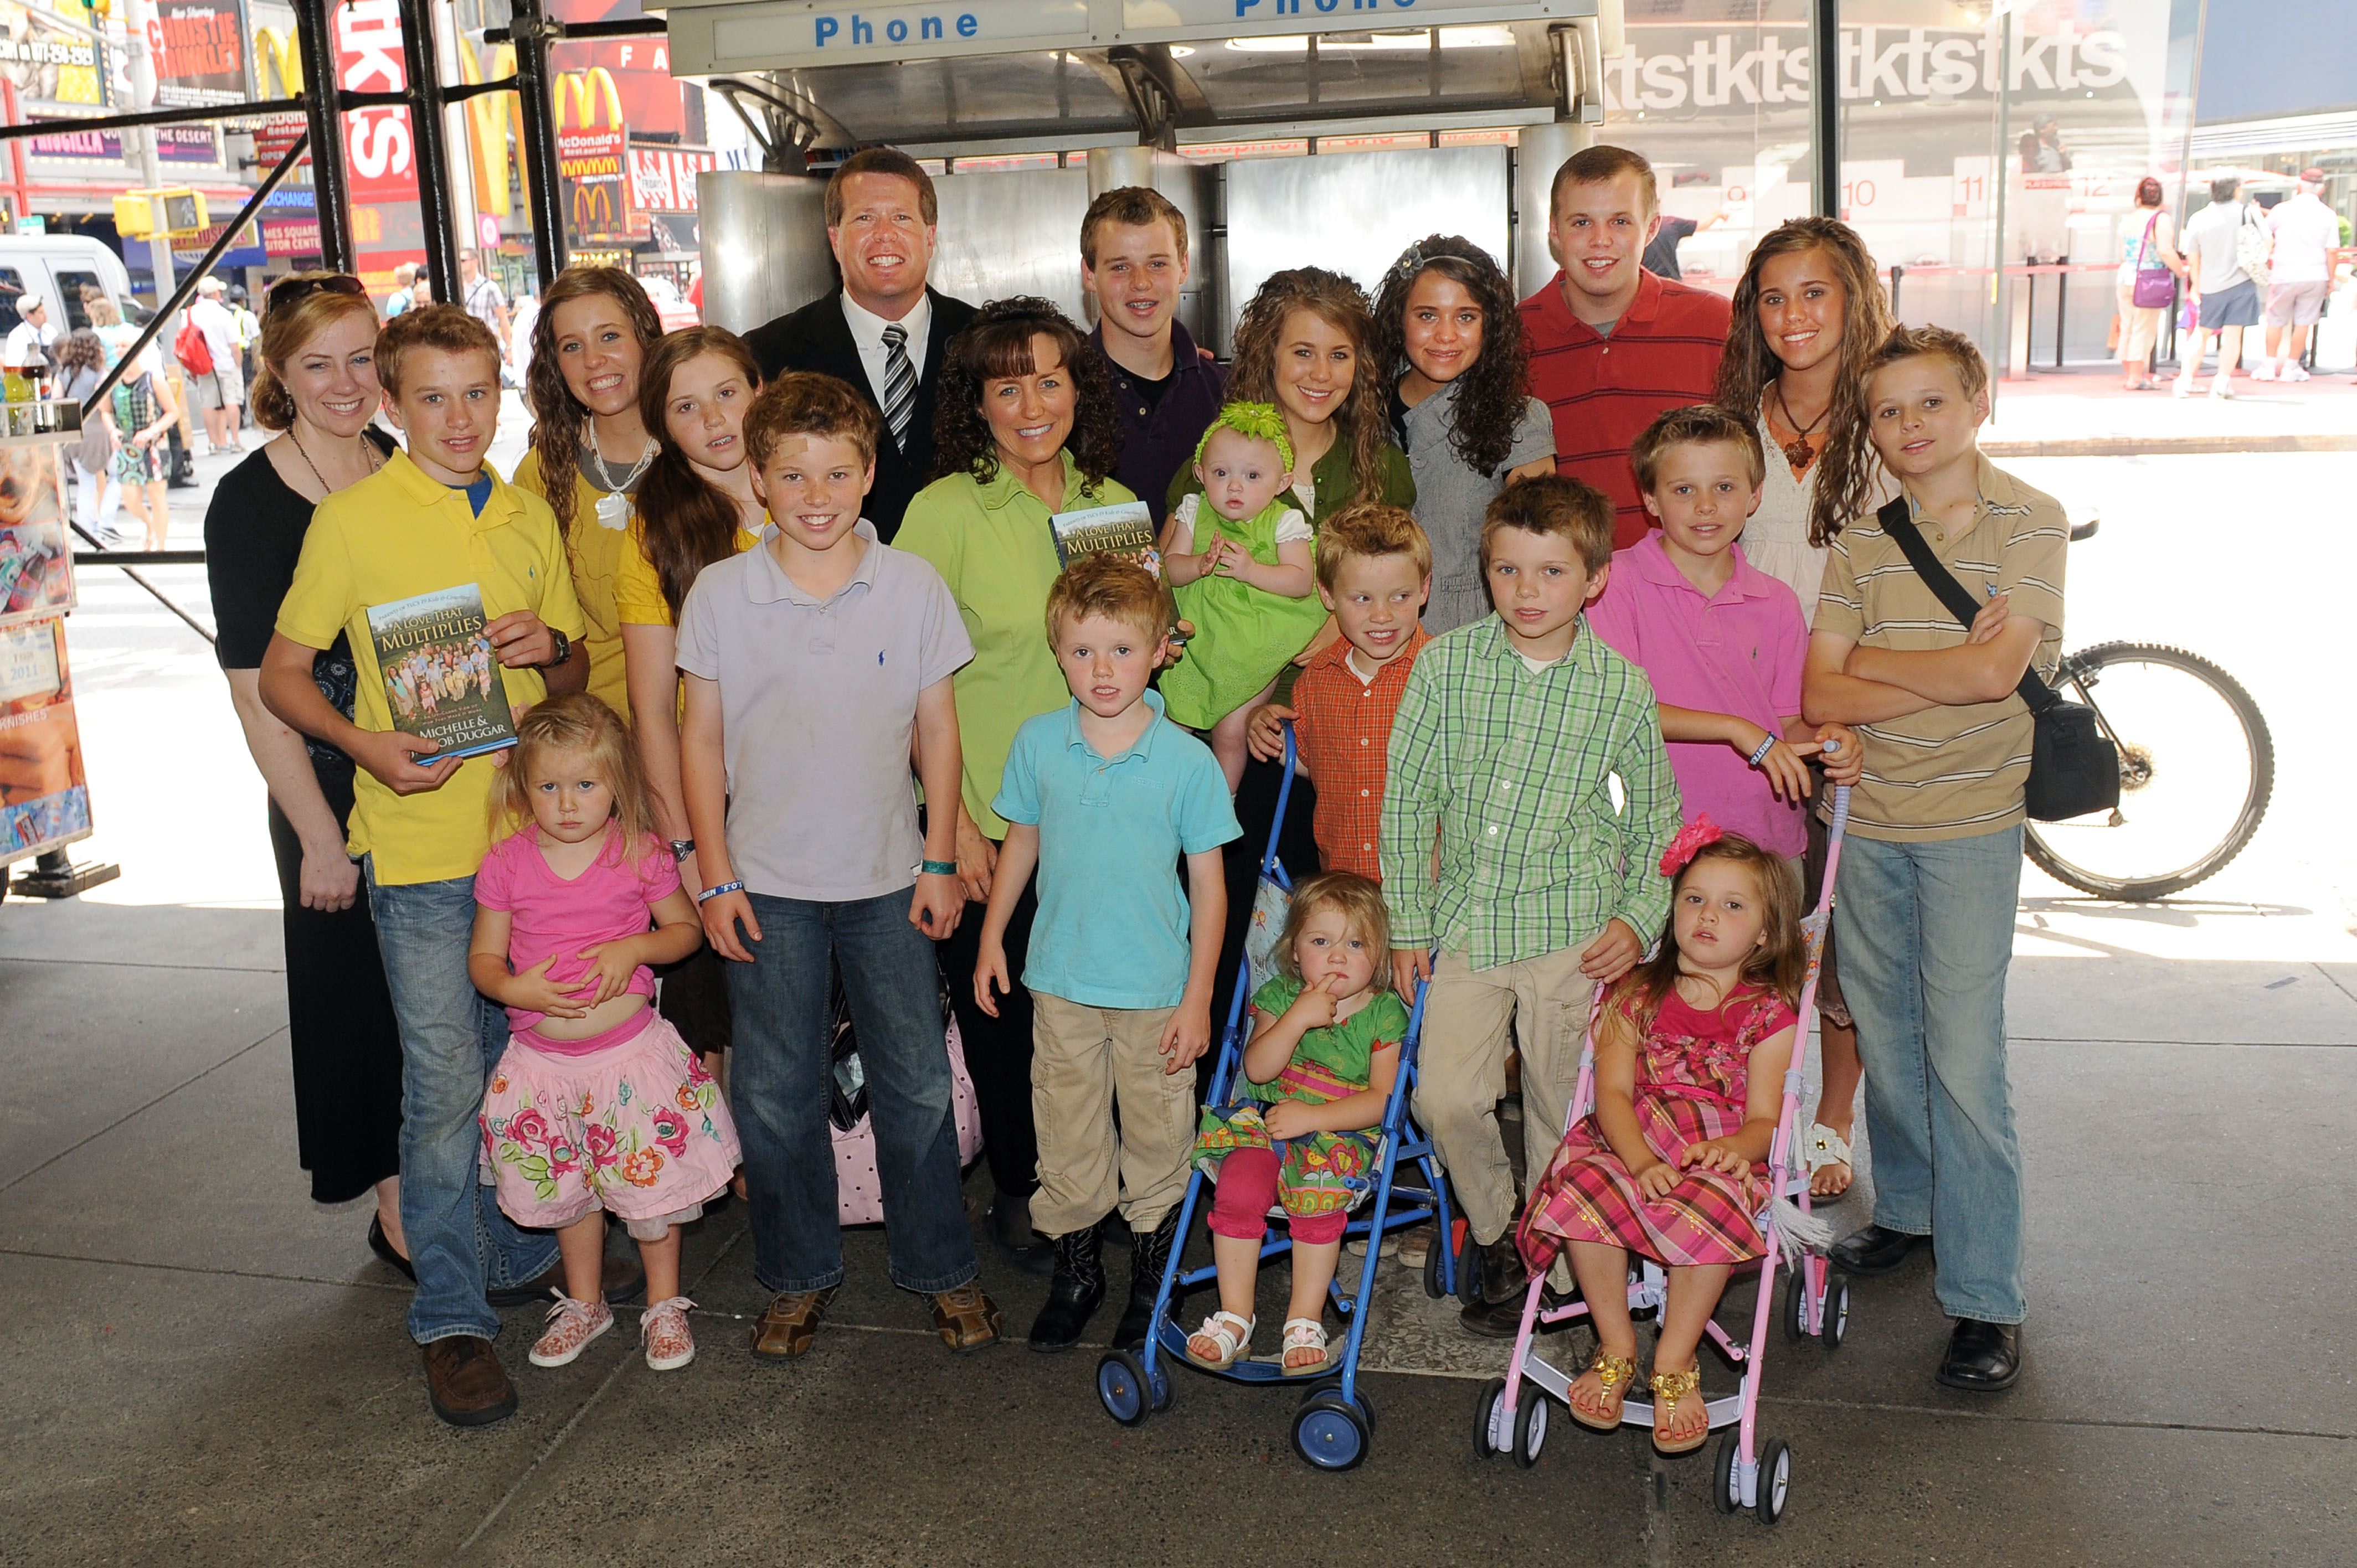 duggar family today